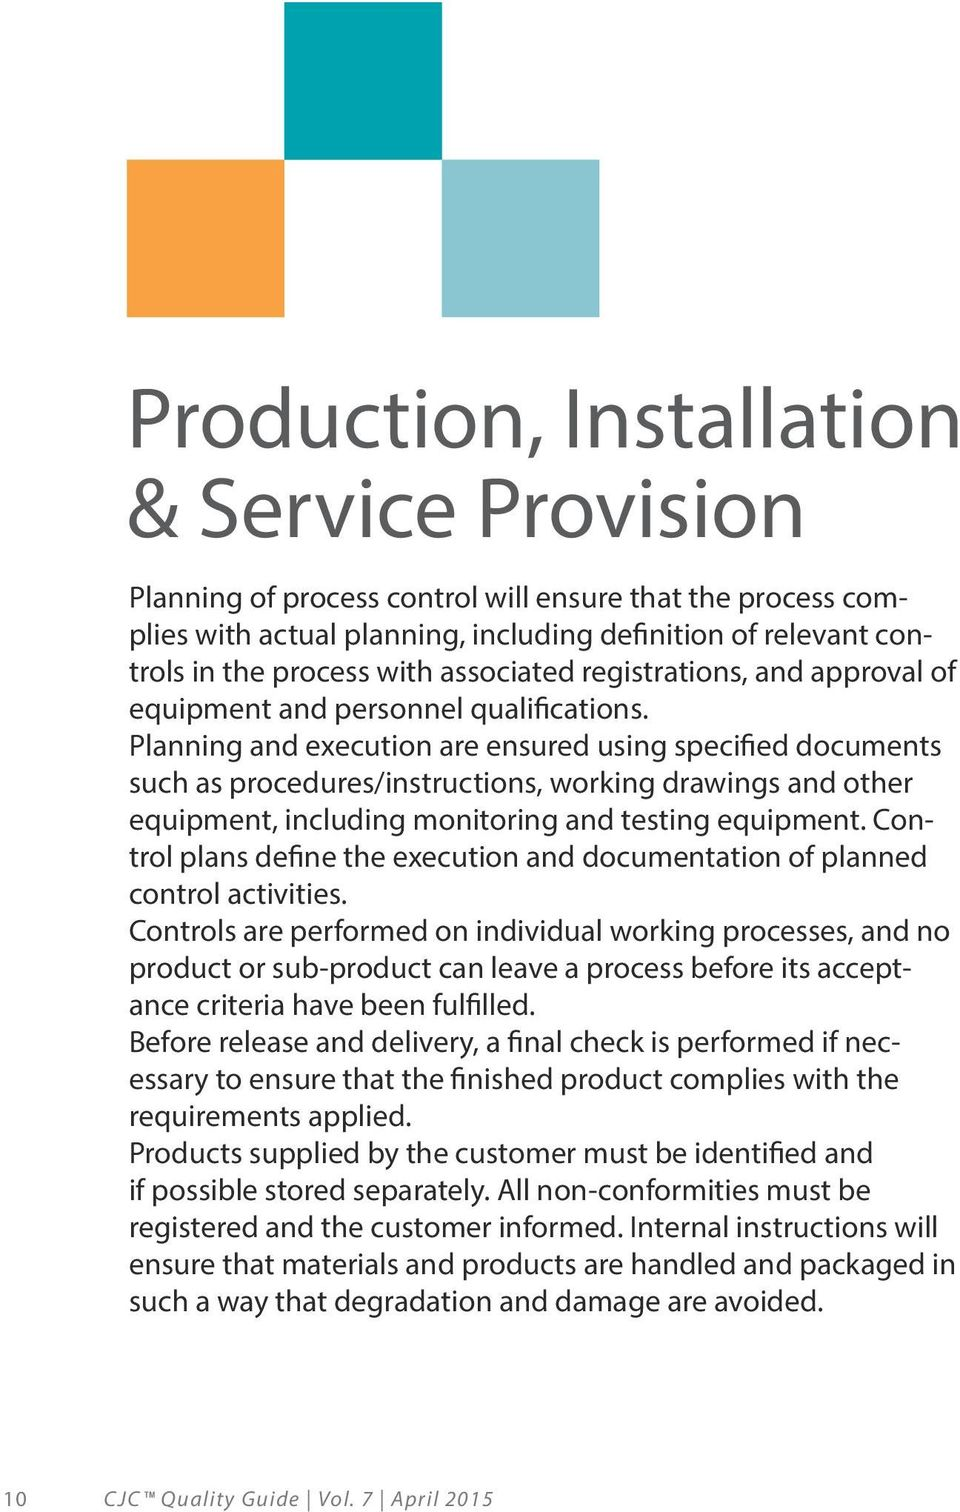 Planning and execution are ensured using specified documents such as procedures/instructions, working drawings and other equipment, including monitoring and testing equipment.